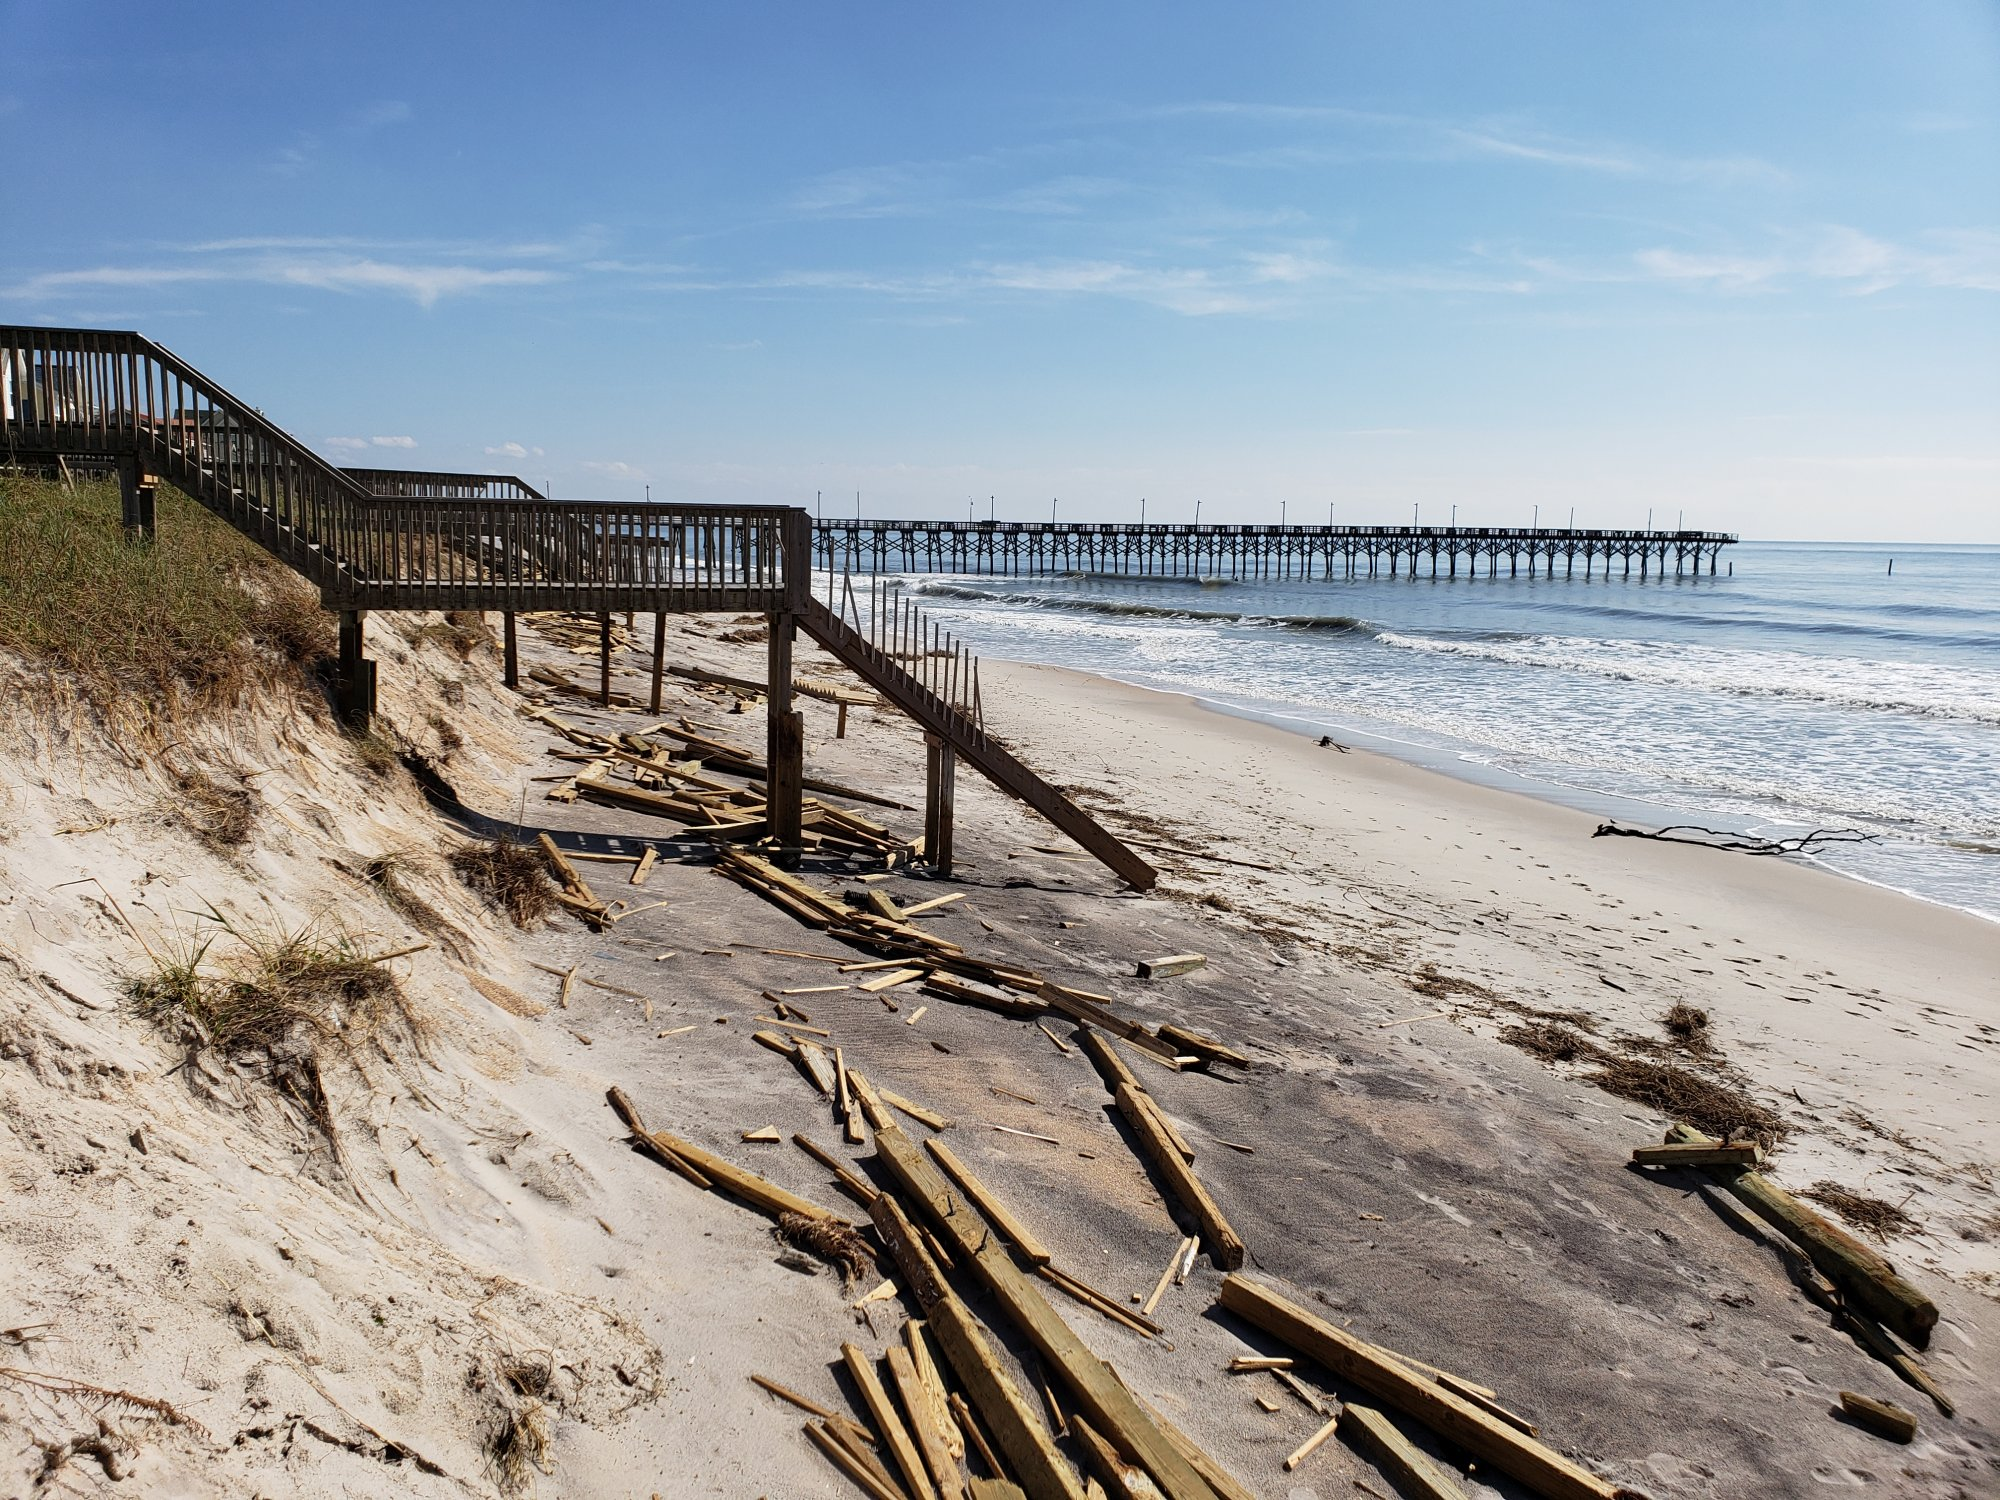 Damage to the beach at Surf City viewed from Beach Access #20. Debris like this was common along most North Carolina beaches after Hurricane Florence. (Photo credit: Carl Morgan/NWS)